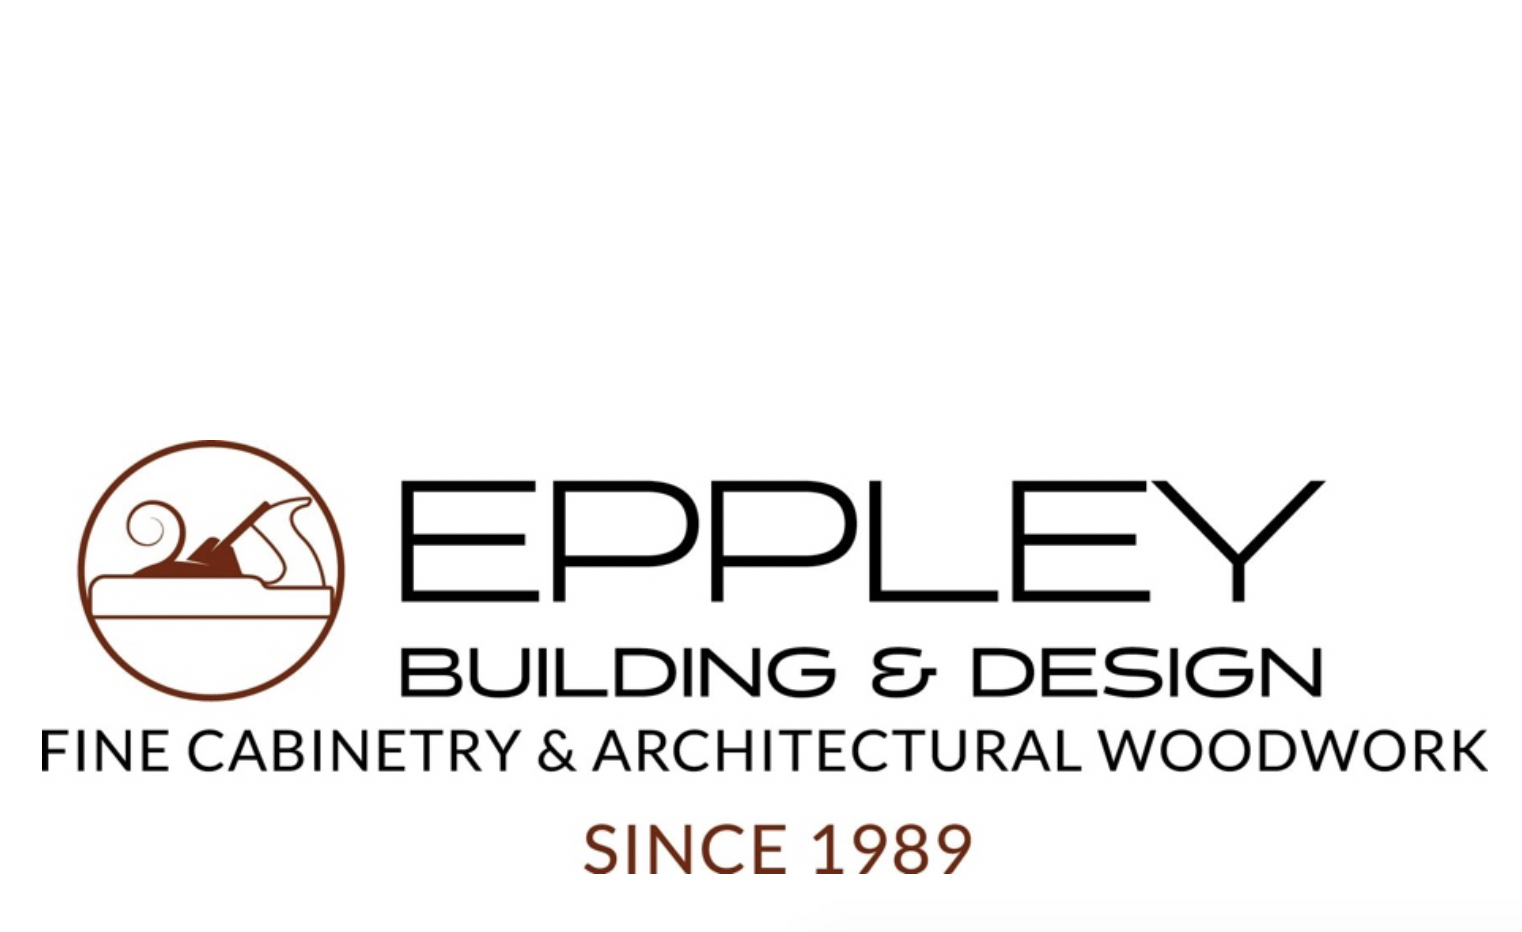 Ebbley Building and Design - For over 35 years, Eppley has been serving the finest builders, contractors, architects and designers in the greater New York area. One of the highest compliments received from these well-respected professionals is,